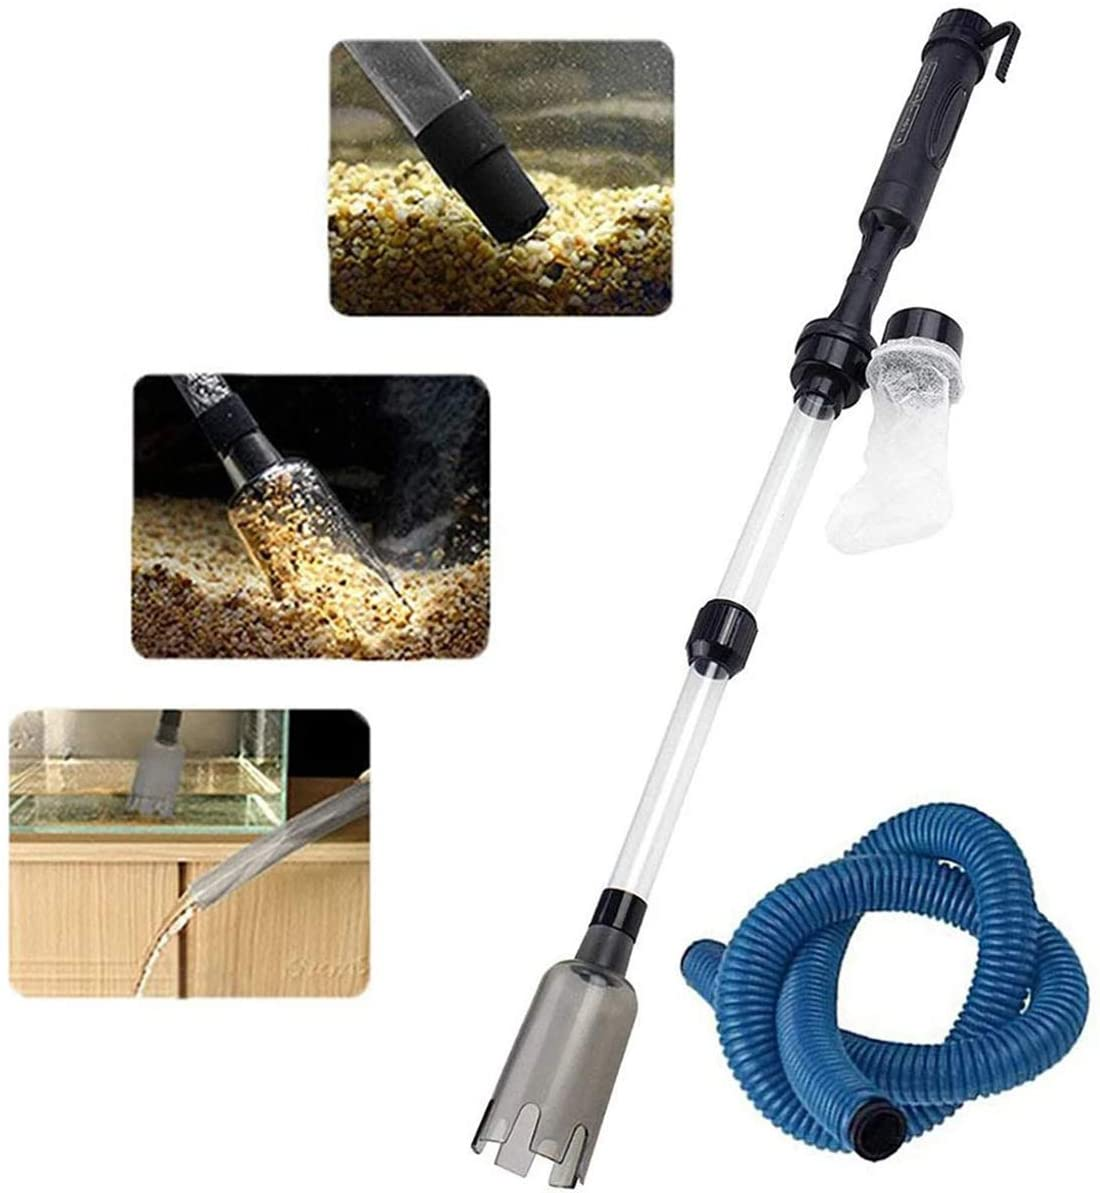 Aquarium Siphon Gravel Cleaner,Fish Tank Vacuum Cleaner Water Change Sand Washer Cleaning Tool